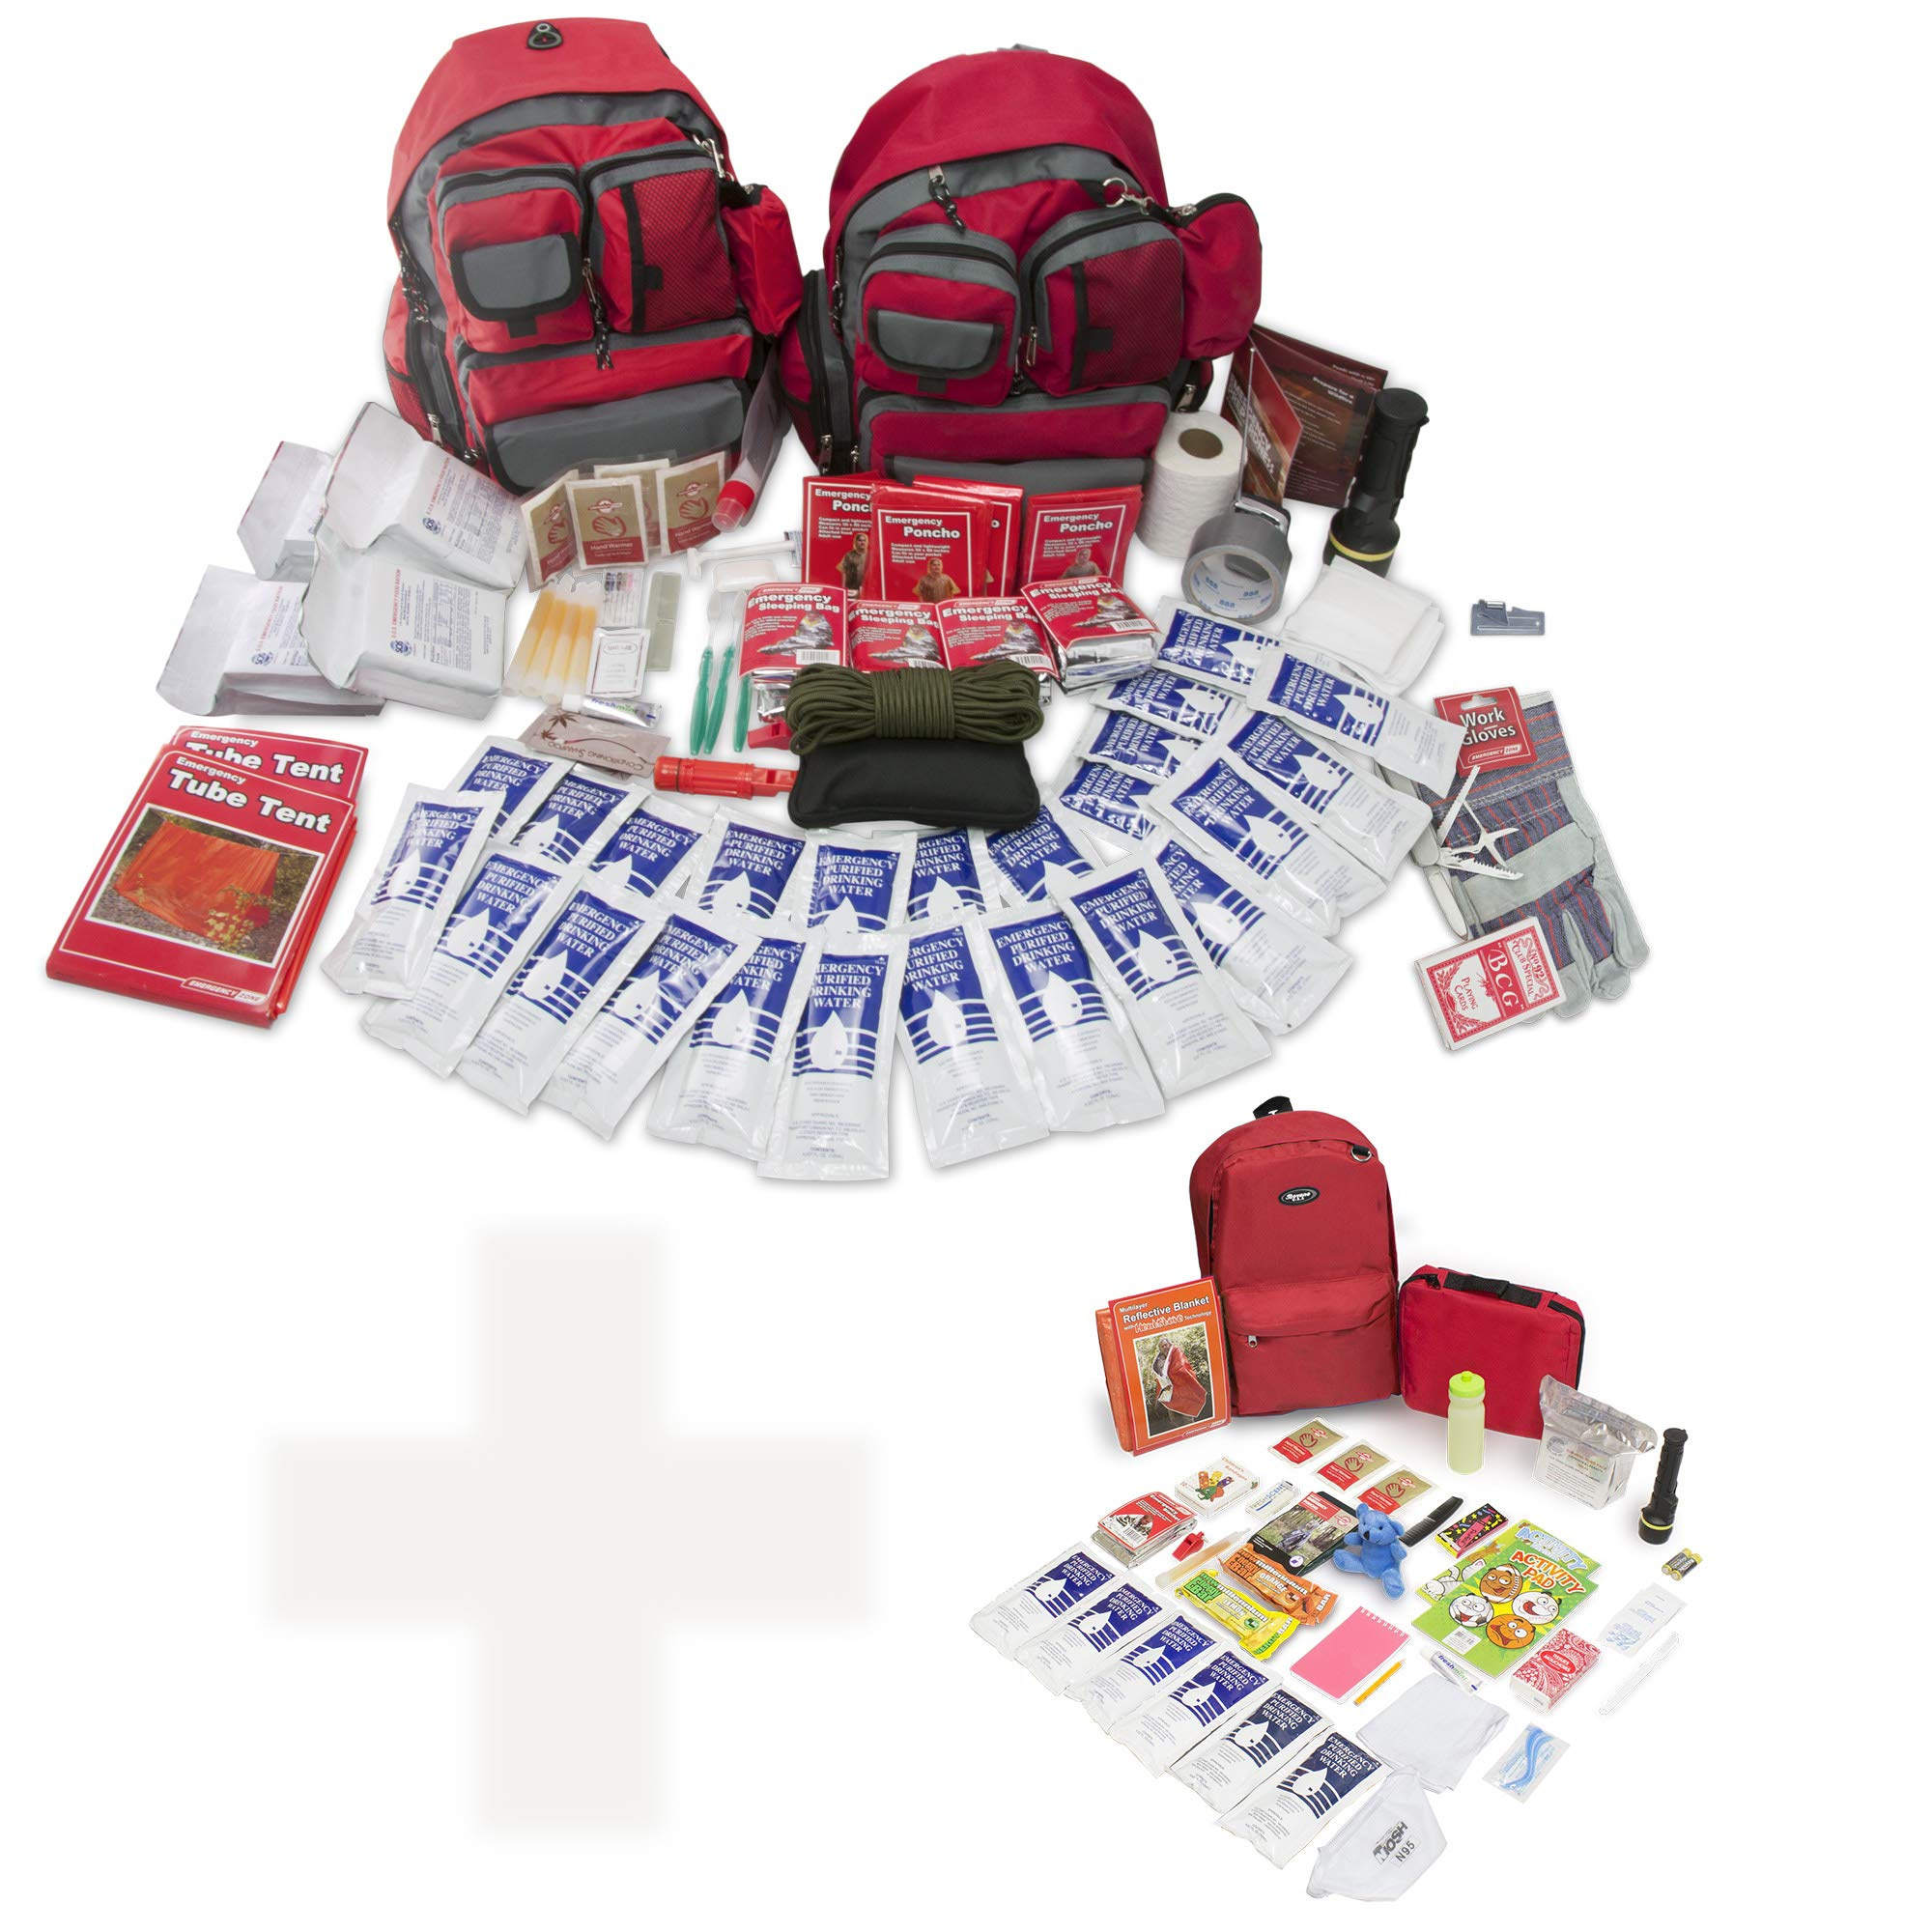 Bundle & Save | Emergency Zone 4 Person Family Prep 72 Hour Survival Kit + Deluxe Child Emergency Go Bag | Perfect Way to Prepare Your Family | Be Ready for Disasters like Hurricanes & Earthquakes